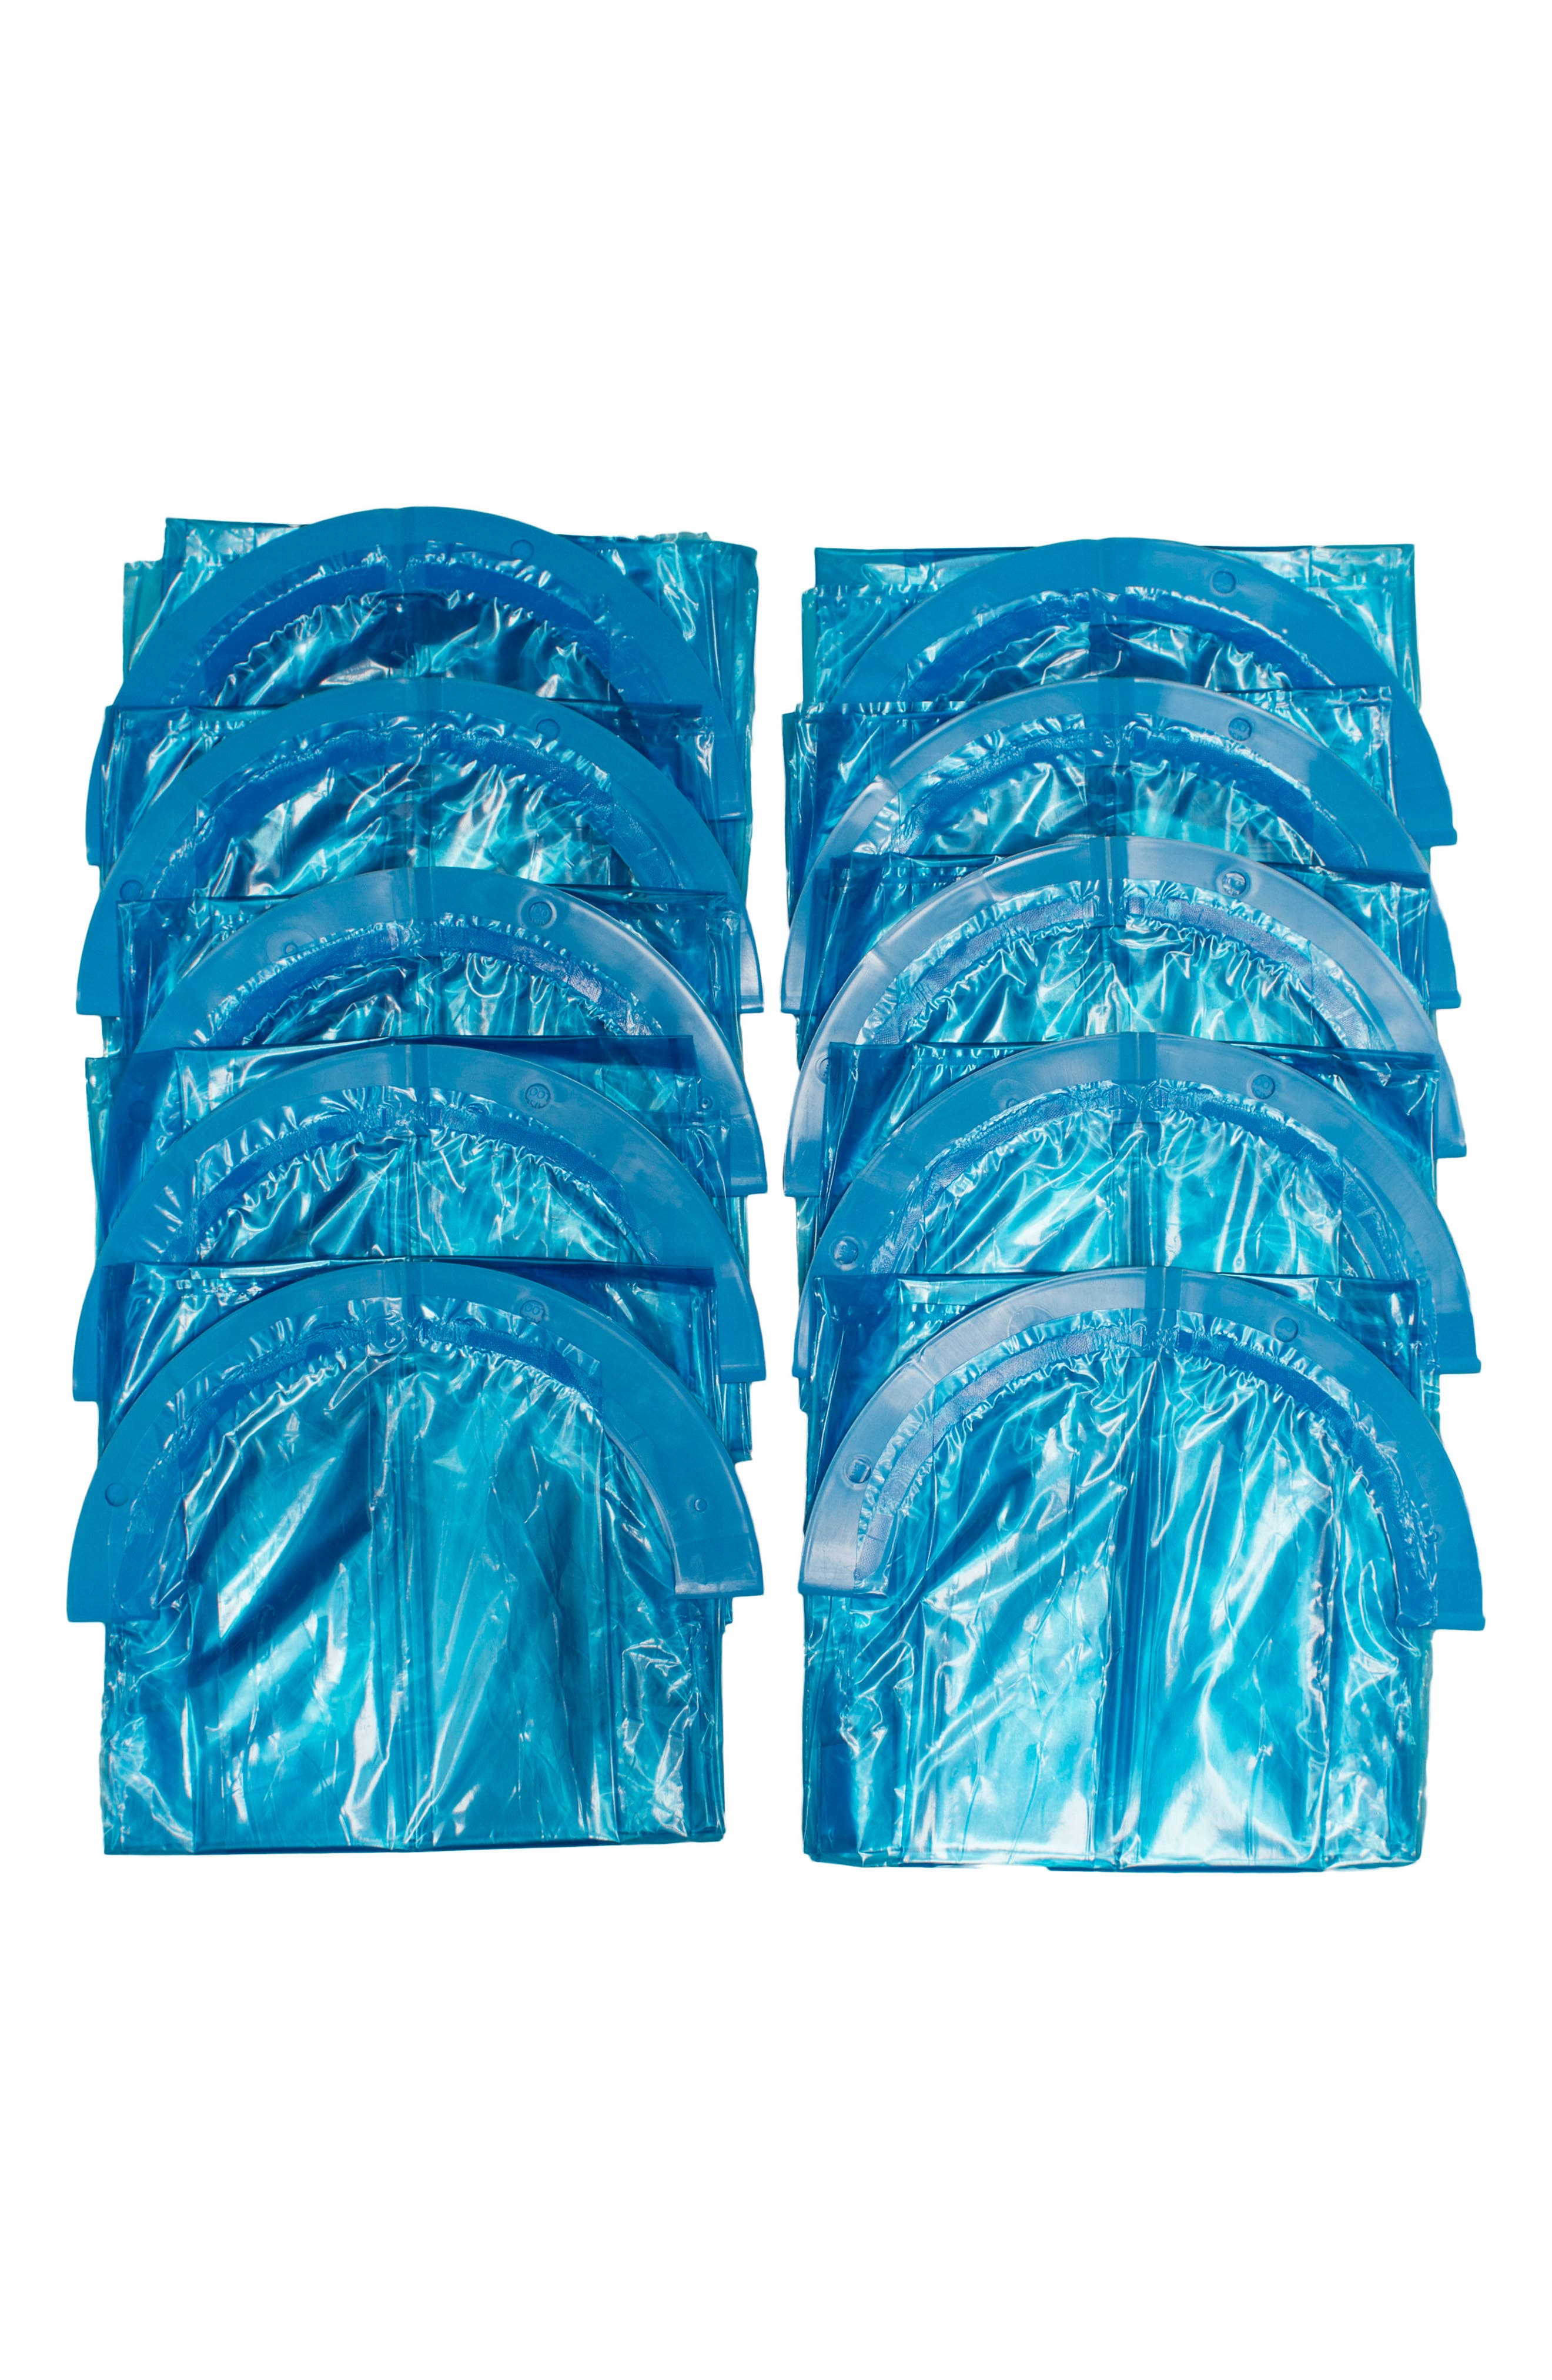 Main Image - Prince Lionheart Twist'r Diaper Disposal System Set of 10 Refill Bags